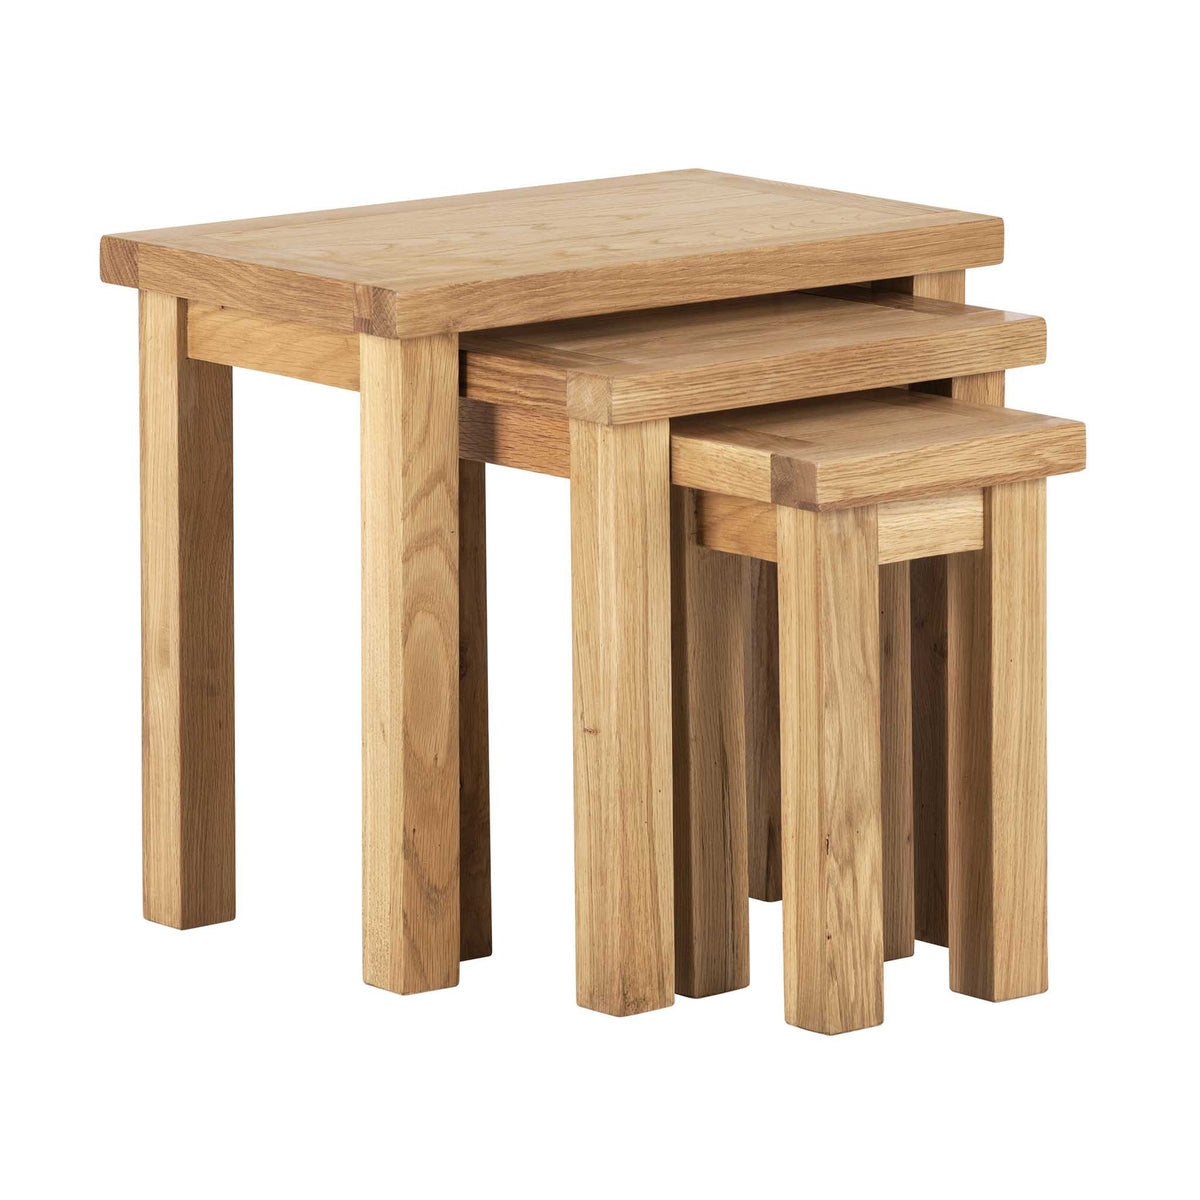 Charlestown Oak Nest of 3 Tables by Roseland Furniture